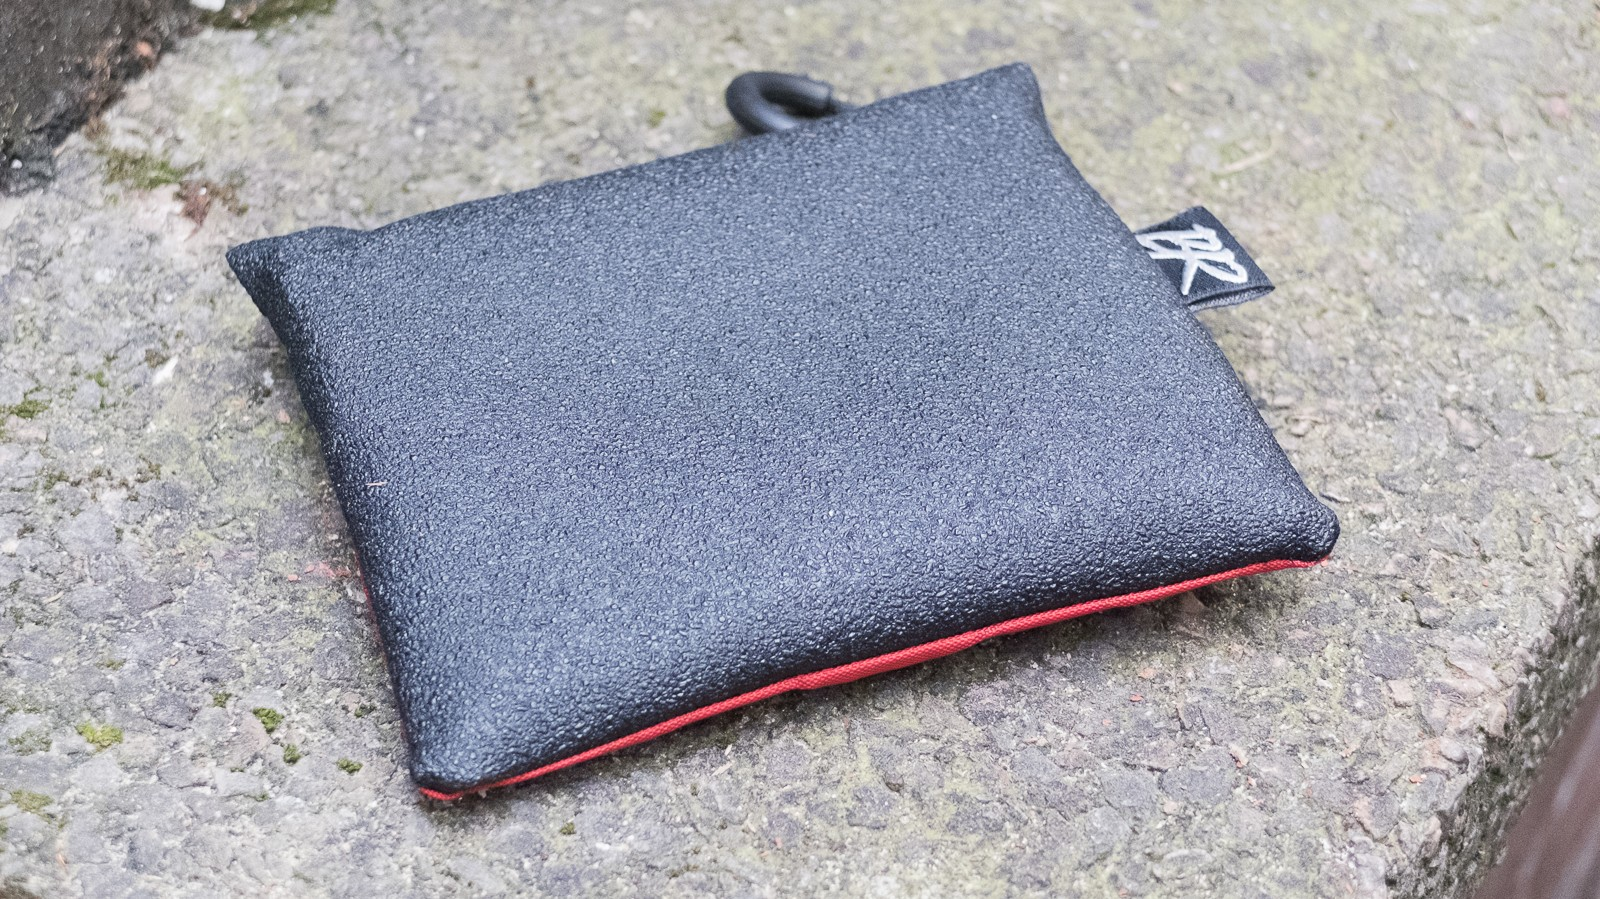 The grippy rear panel stops the bag from flying out your pocket